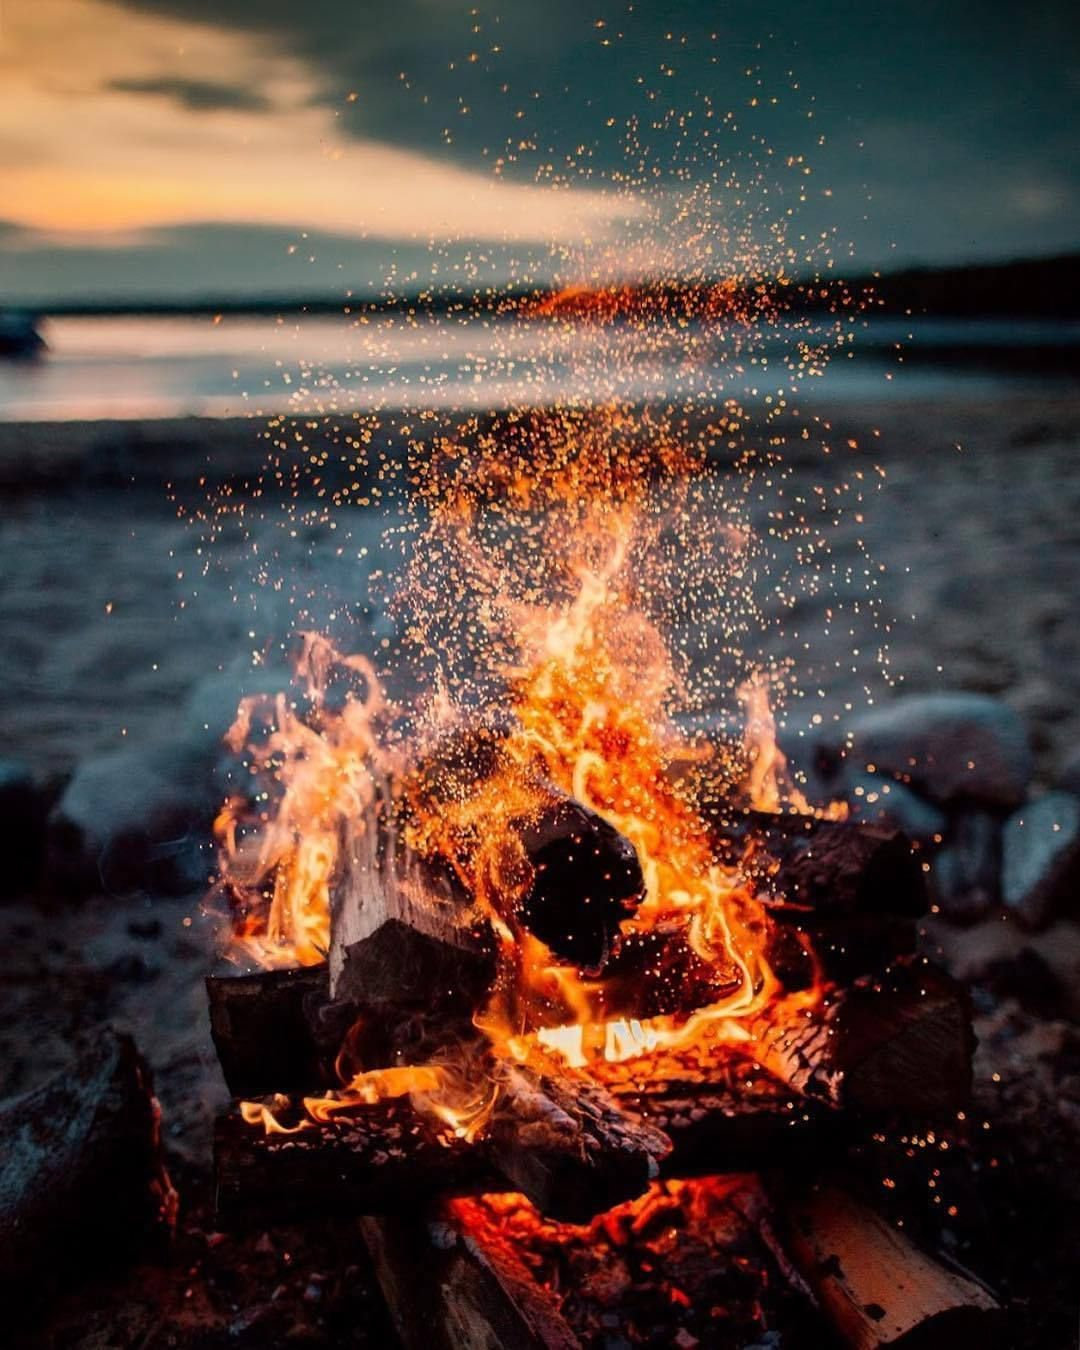 Essenceofnatvre Artofvisuals This To Us Is The Essence Of Summer What Gives You Summer Nostalgia Be Visually Inspired By Gut Fire Photography Photo Fire